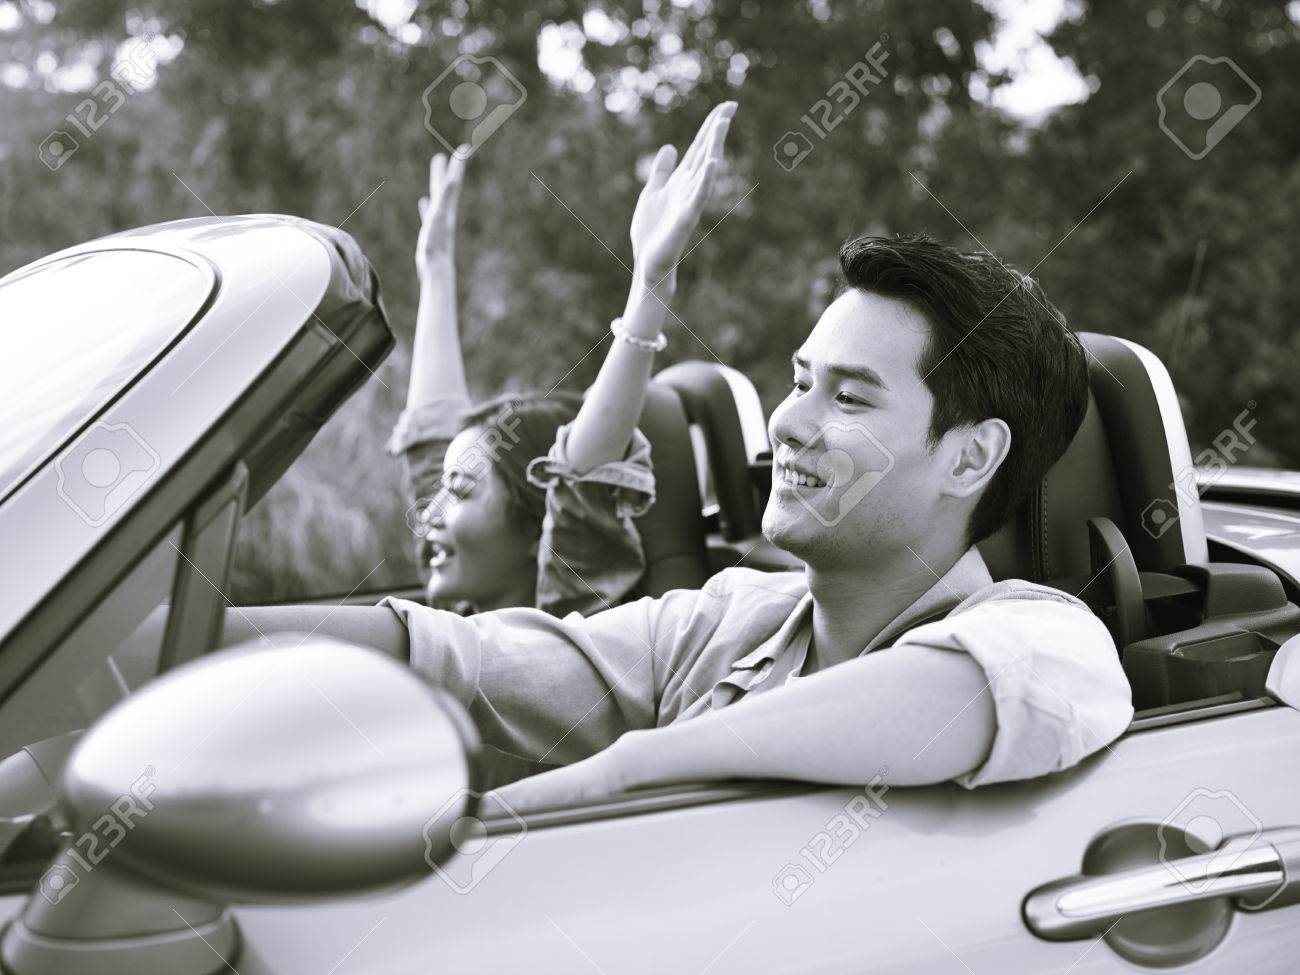 Young Asian Couple Riding In A Convertible Sport Car Enjoying The Cool  Breeze At Sunset,